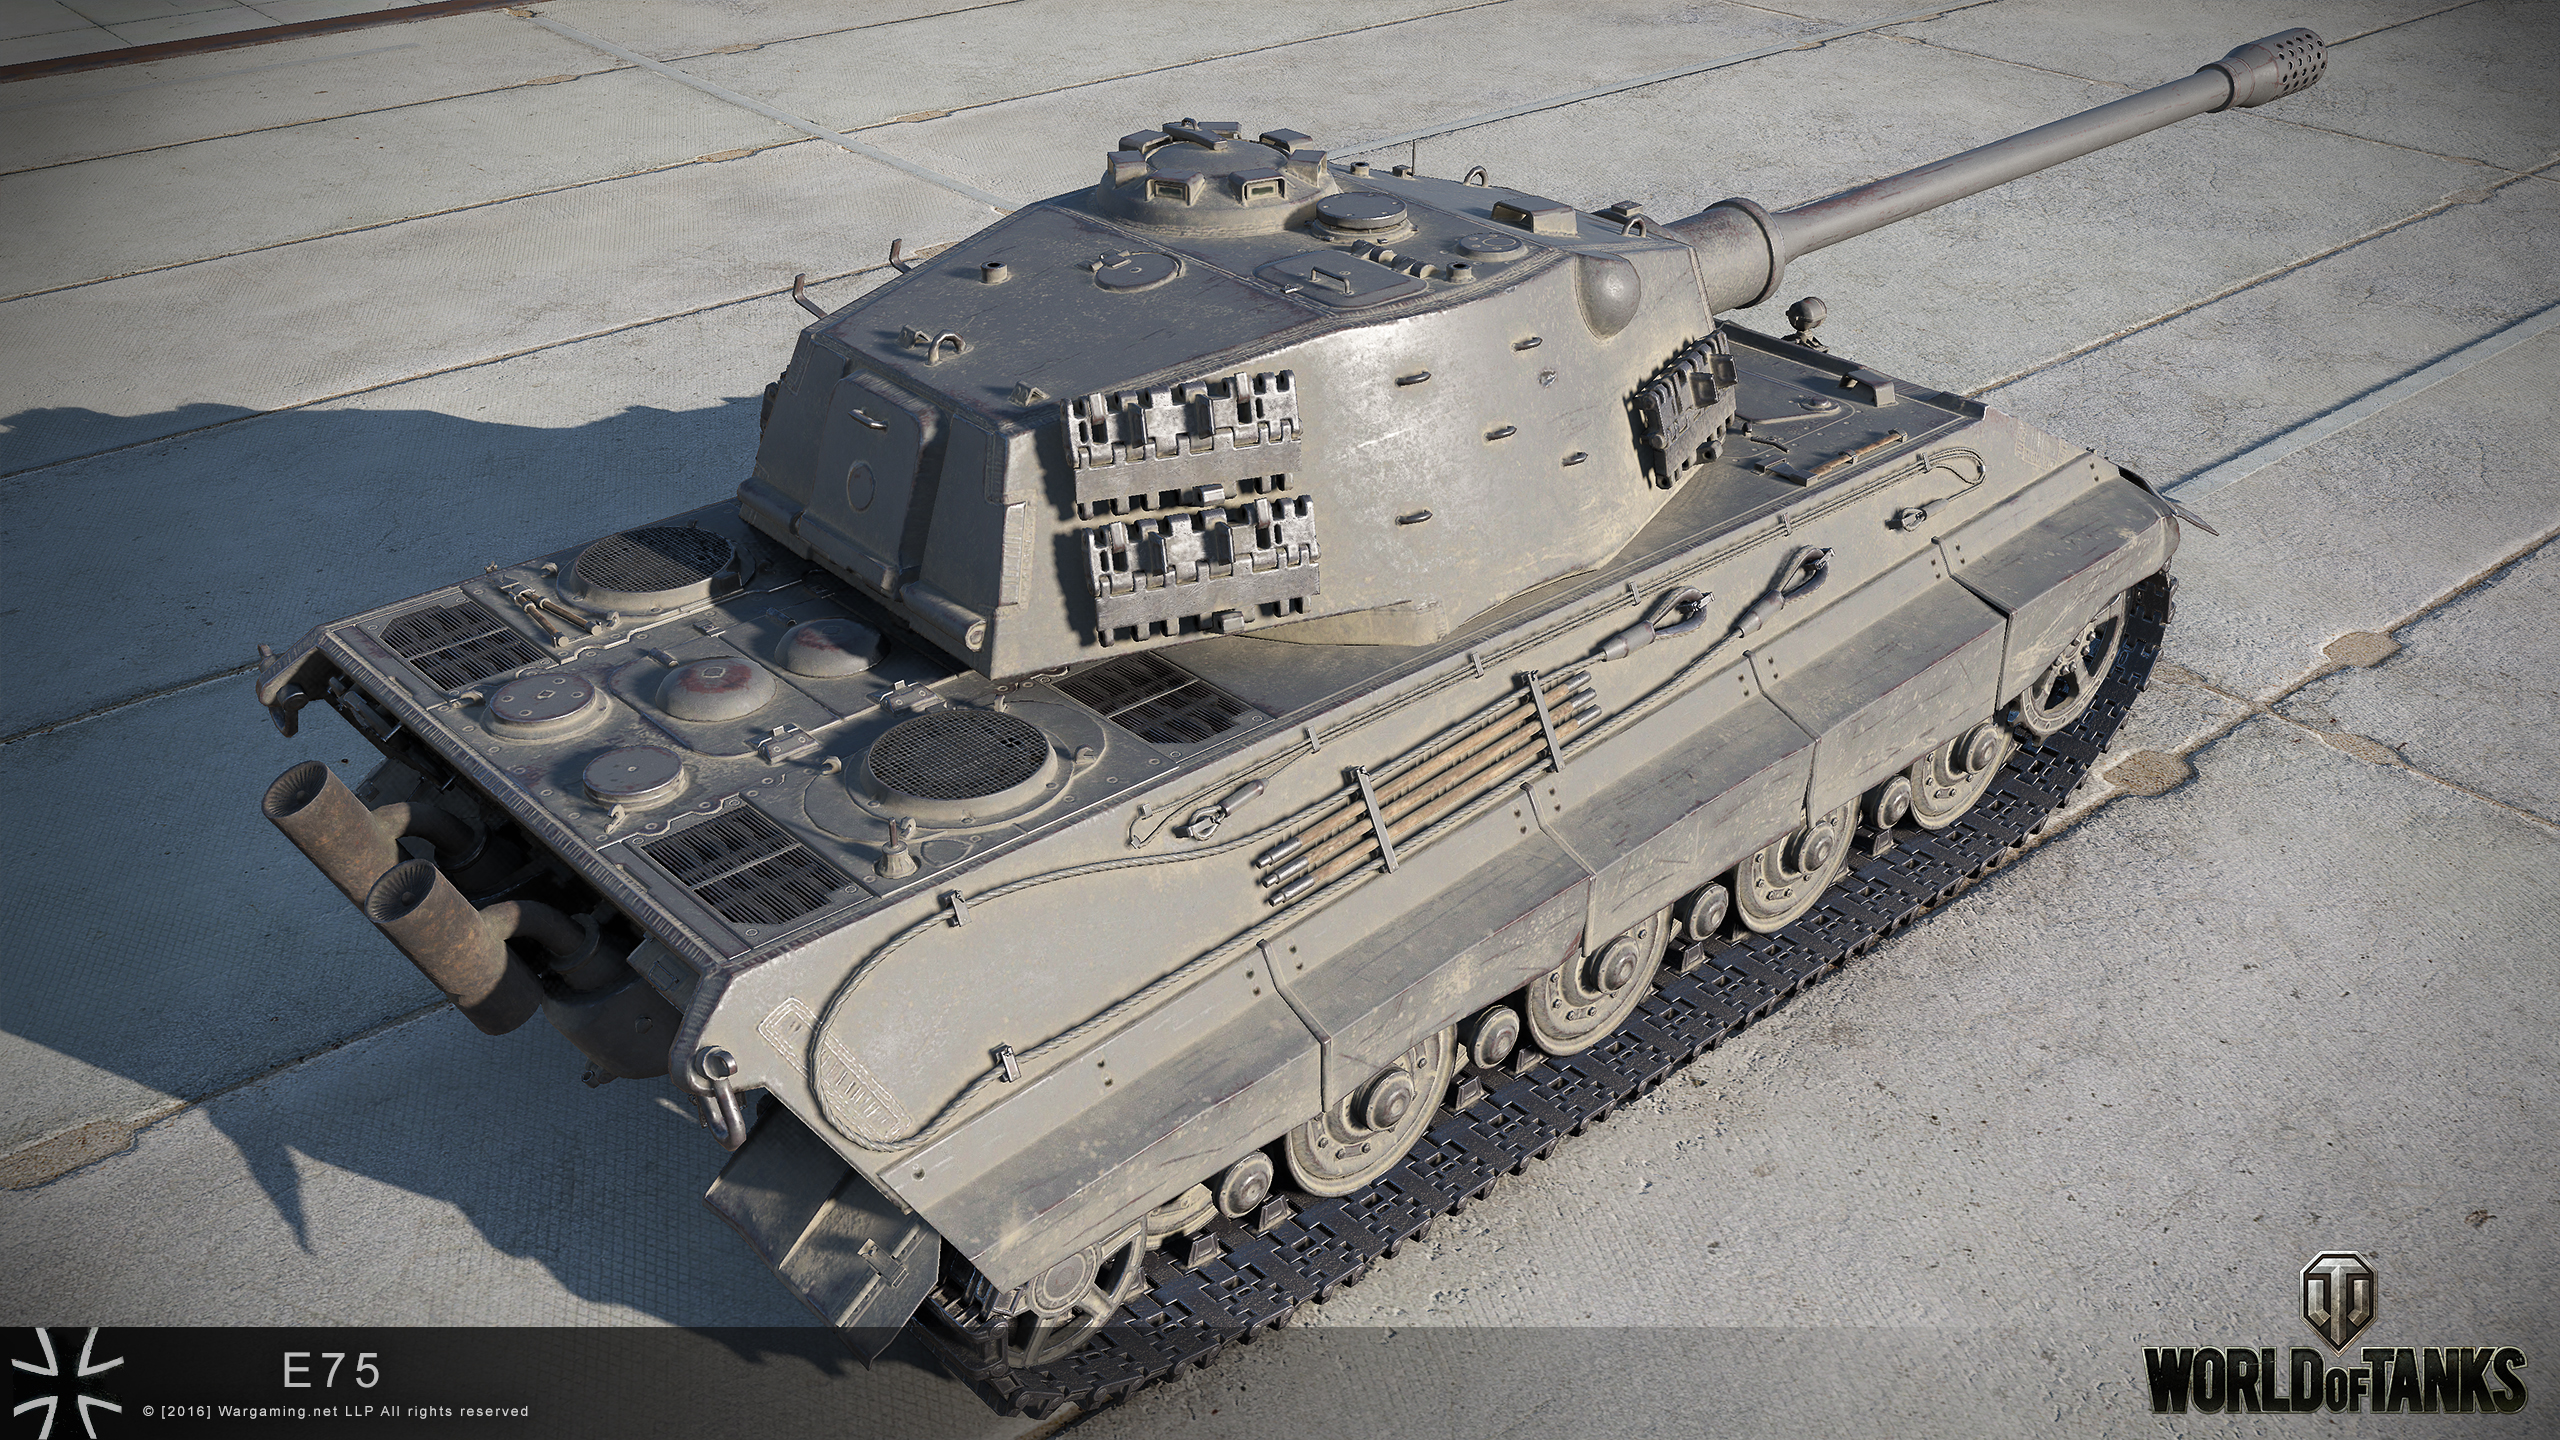 World of Tanks 0.9.15.1 E75 Dicker Max and Hetzer HD official pictures | MMOWG.net